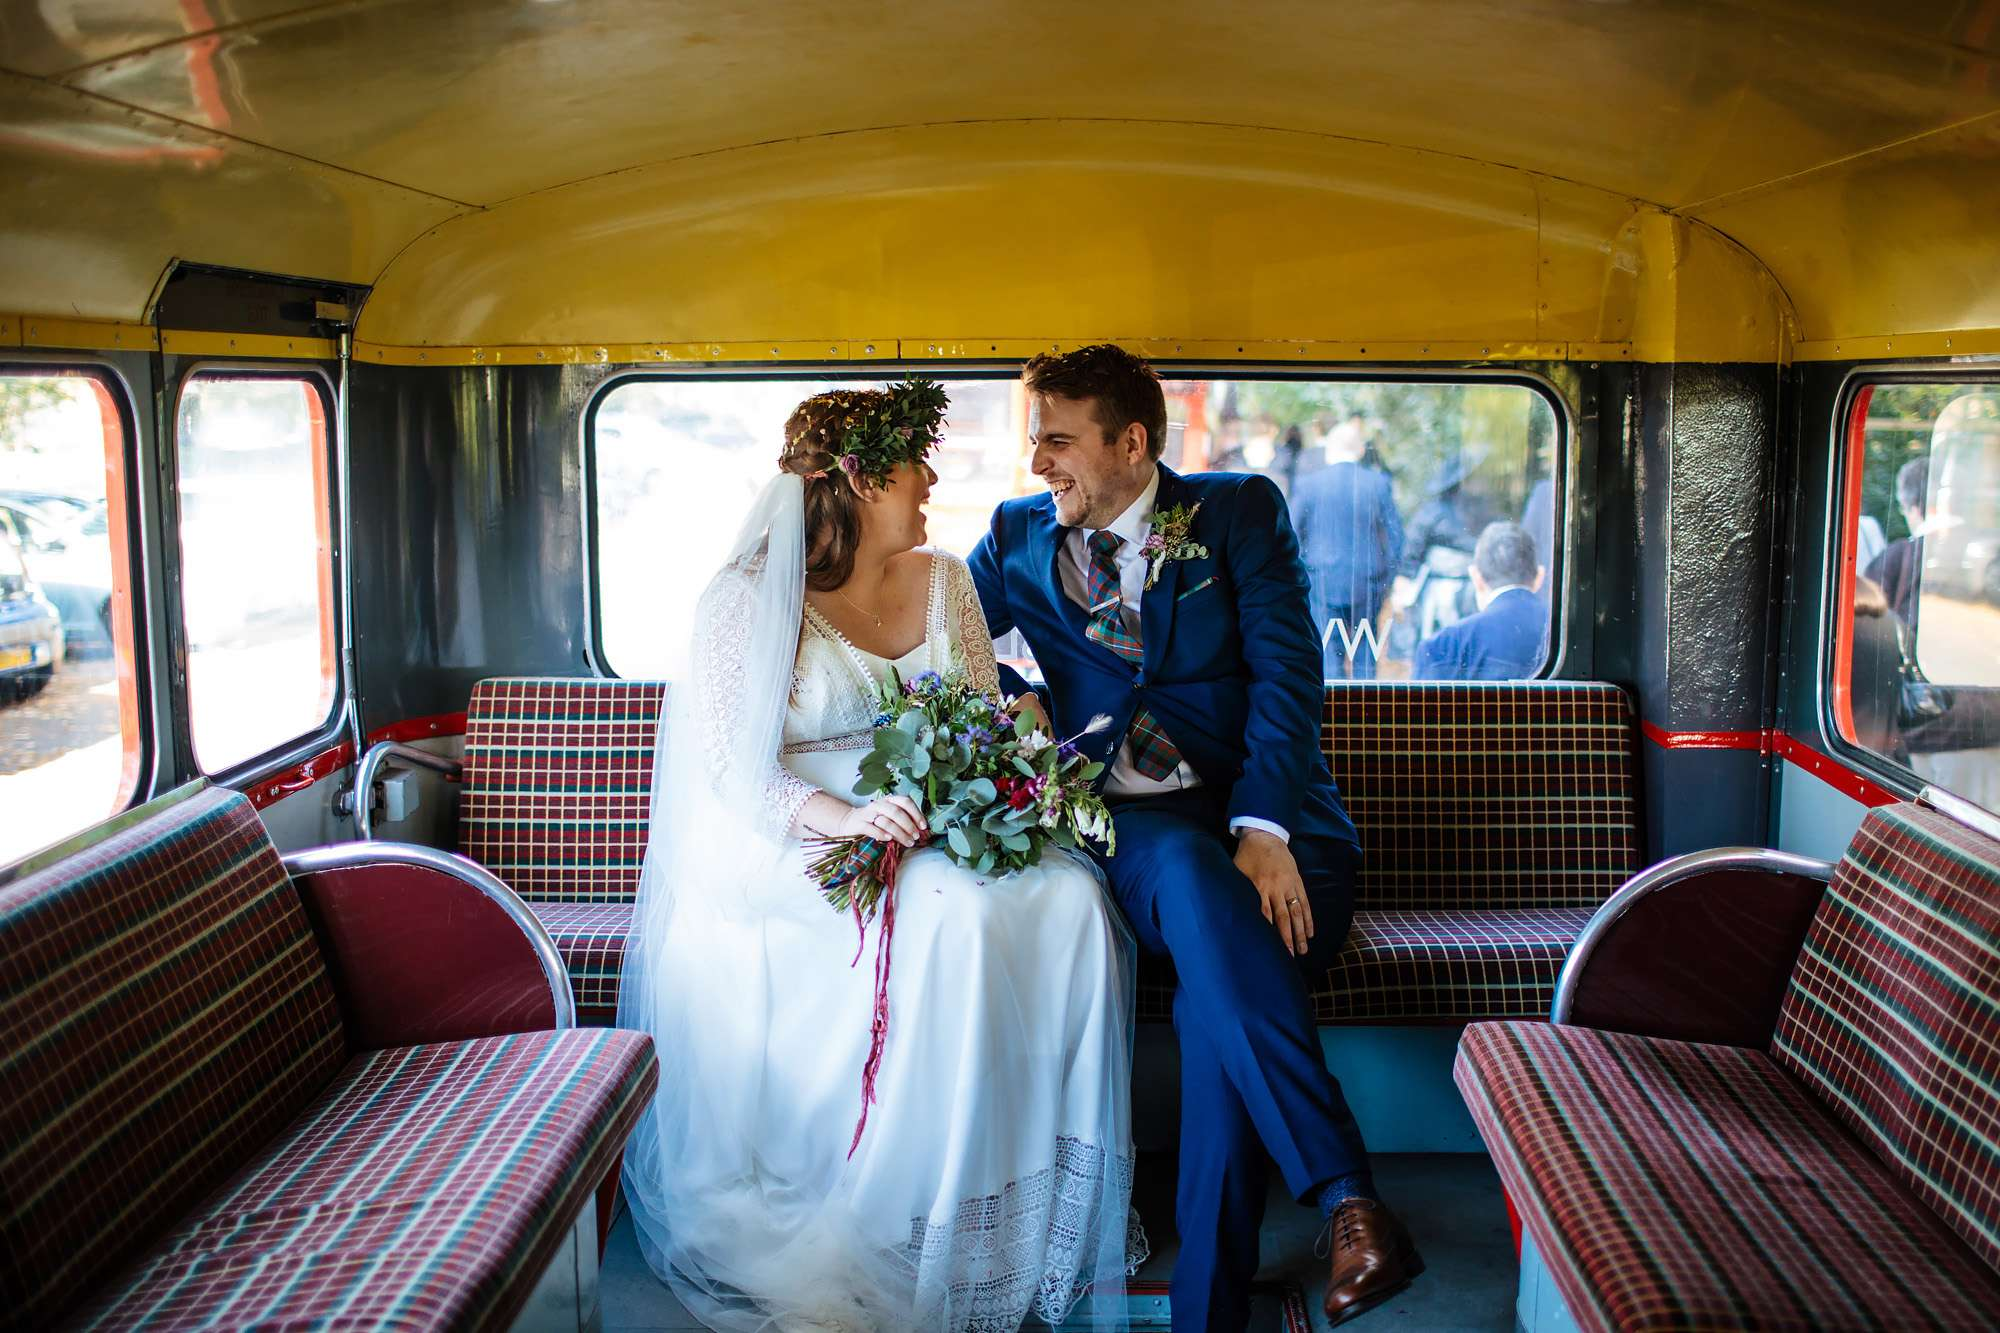 Bride and groom sitting on their vintage bus at a wedding